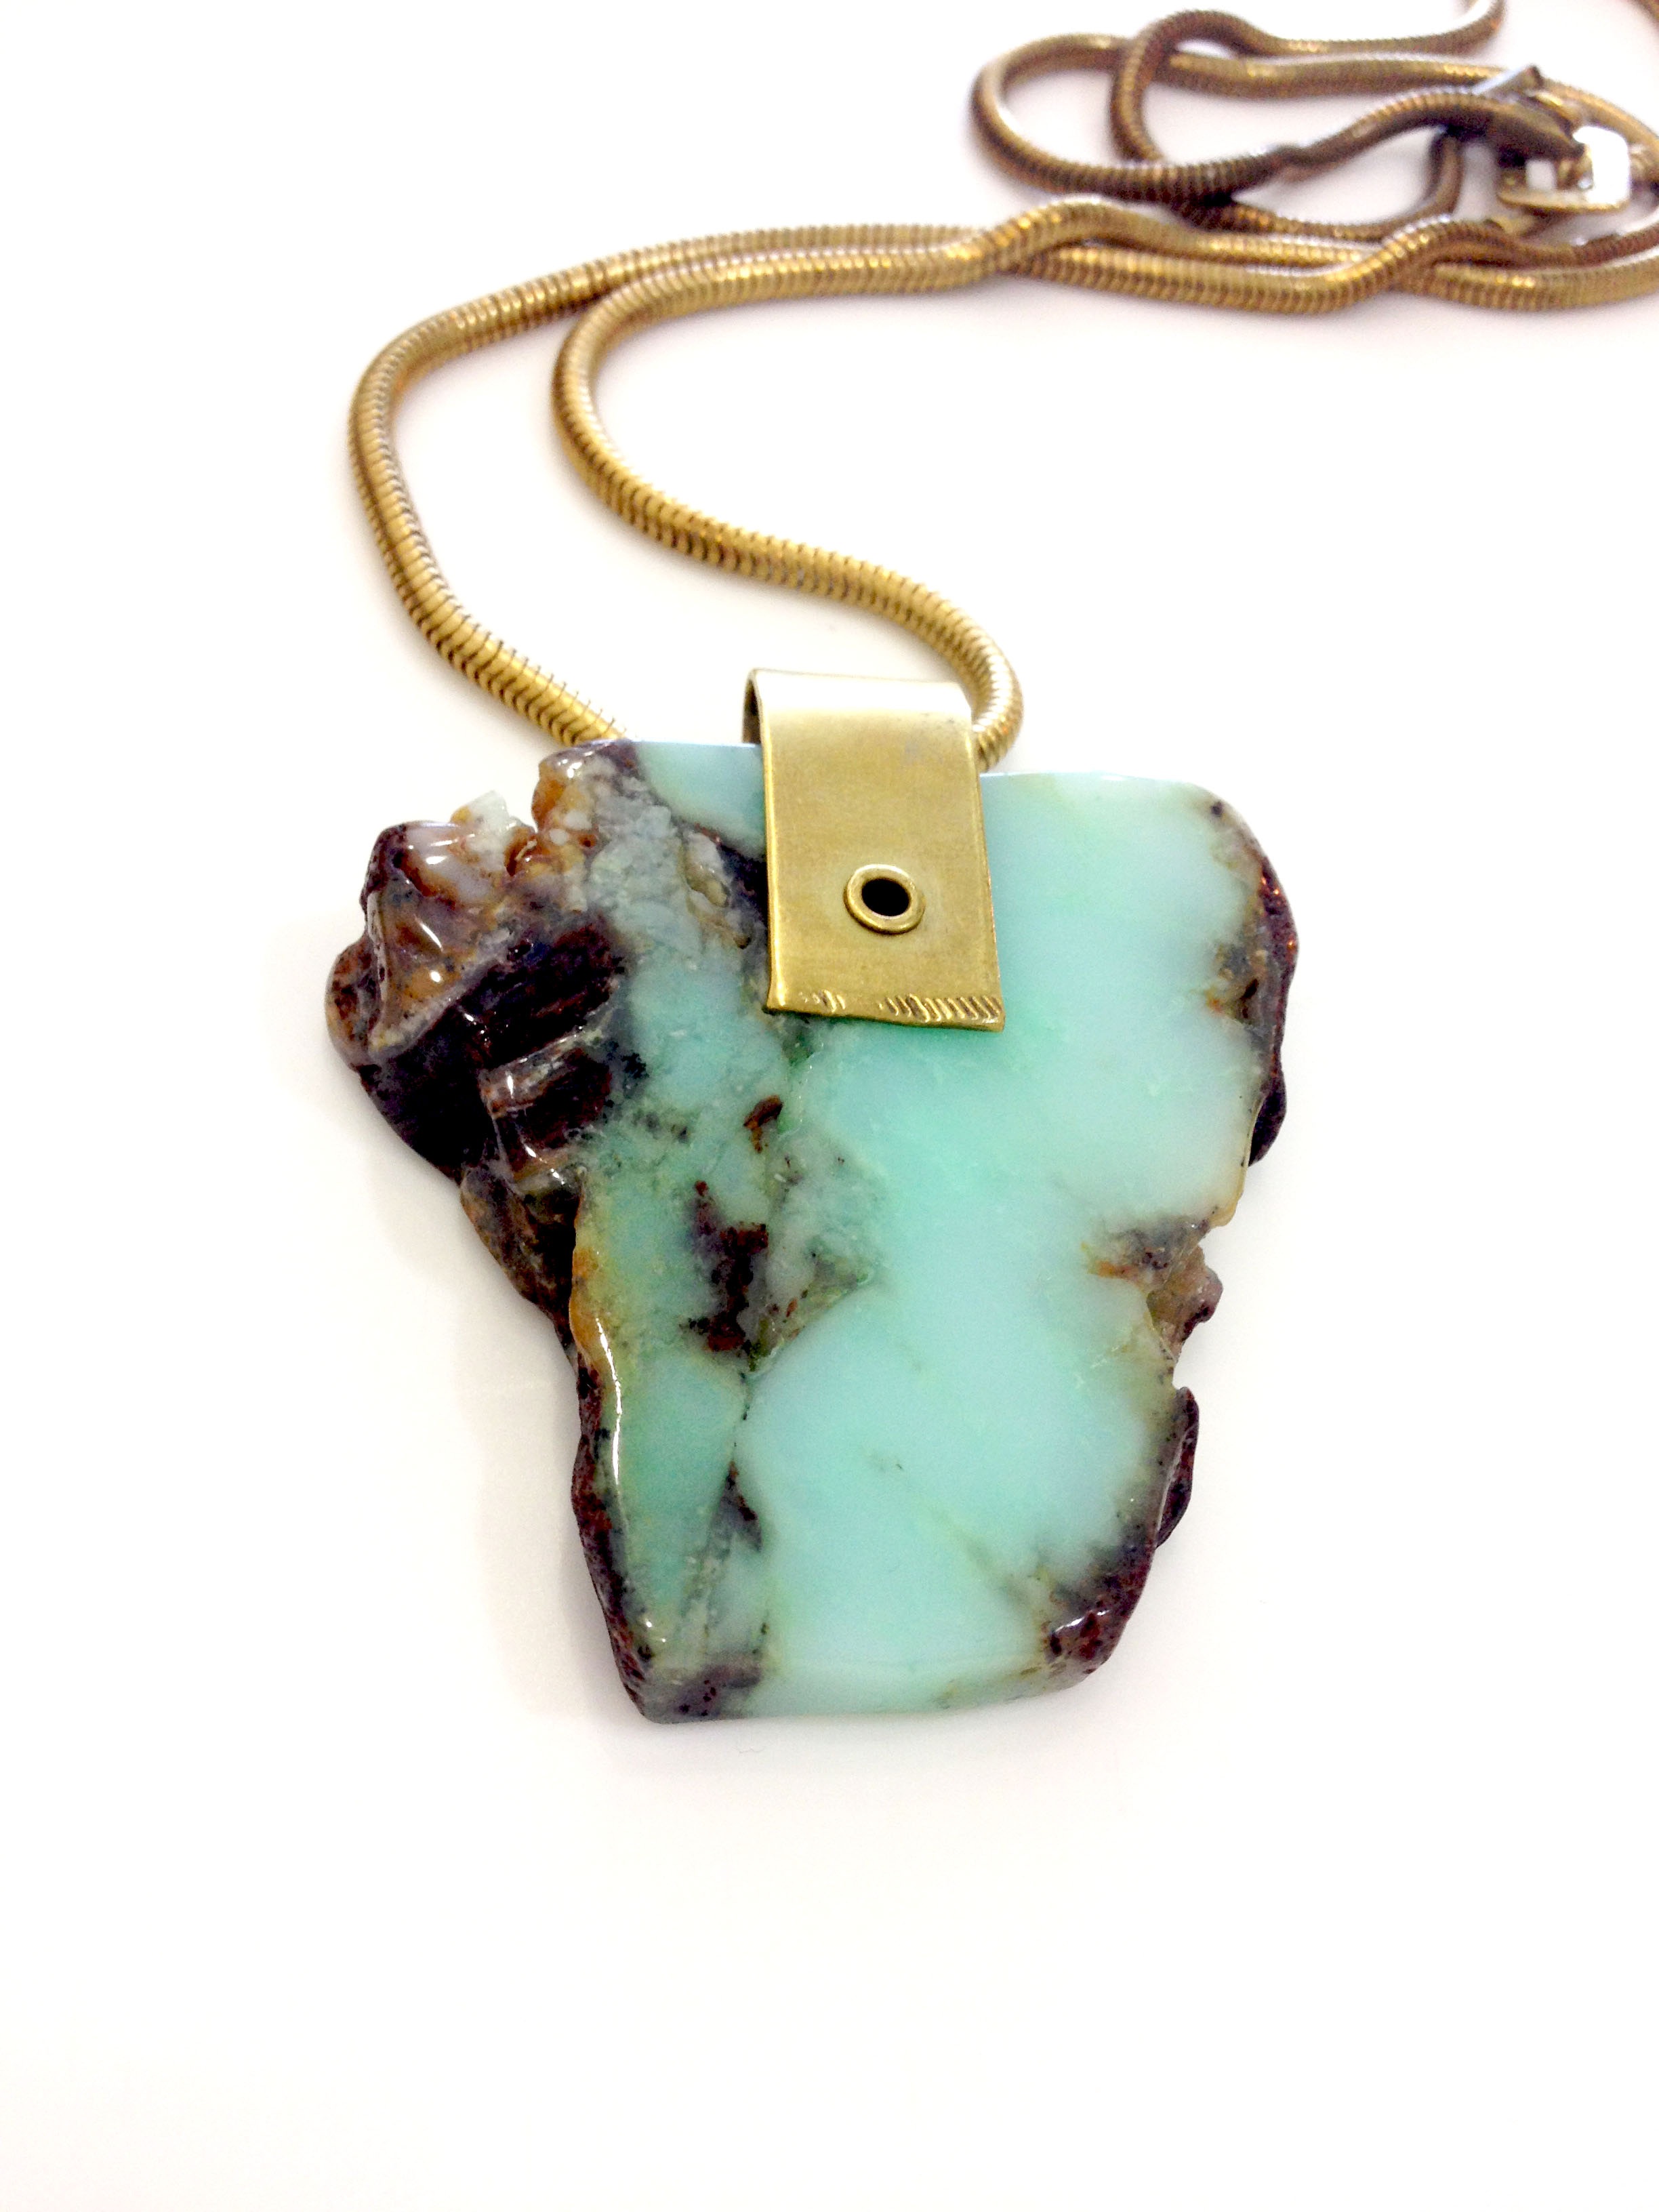 on chrysoprase natural livemaster shop necklace mermaid online jewelry with from handmade item buy stones a